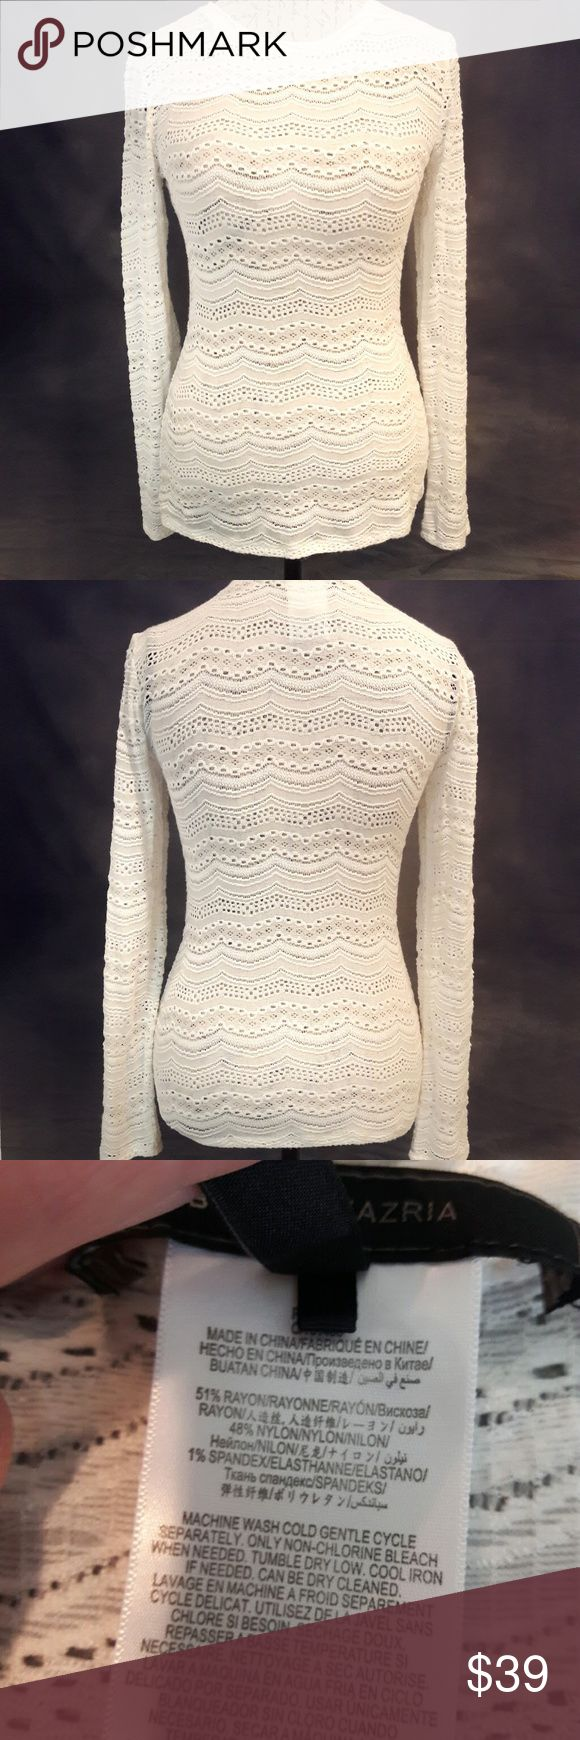 *SALE* BCBGMaxAzria eyelet long sleeve shirt In perfect condition. Like new! Very lovely see through eyelet long sleeve shirt. White in color. Measurements provided in pics above. True to size. From a smoke and pet free home. Fast shipping! Bundle and save. BCBGMaxAzria Tops